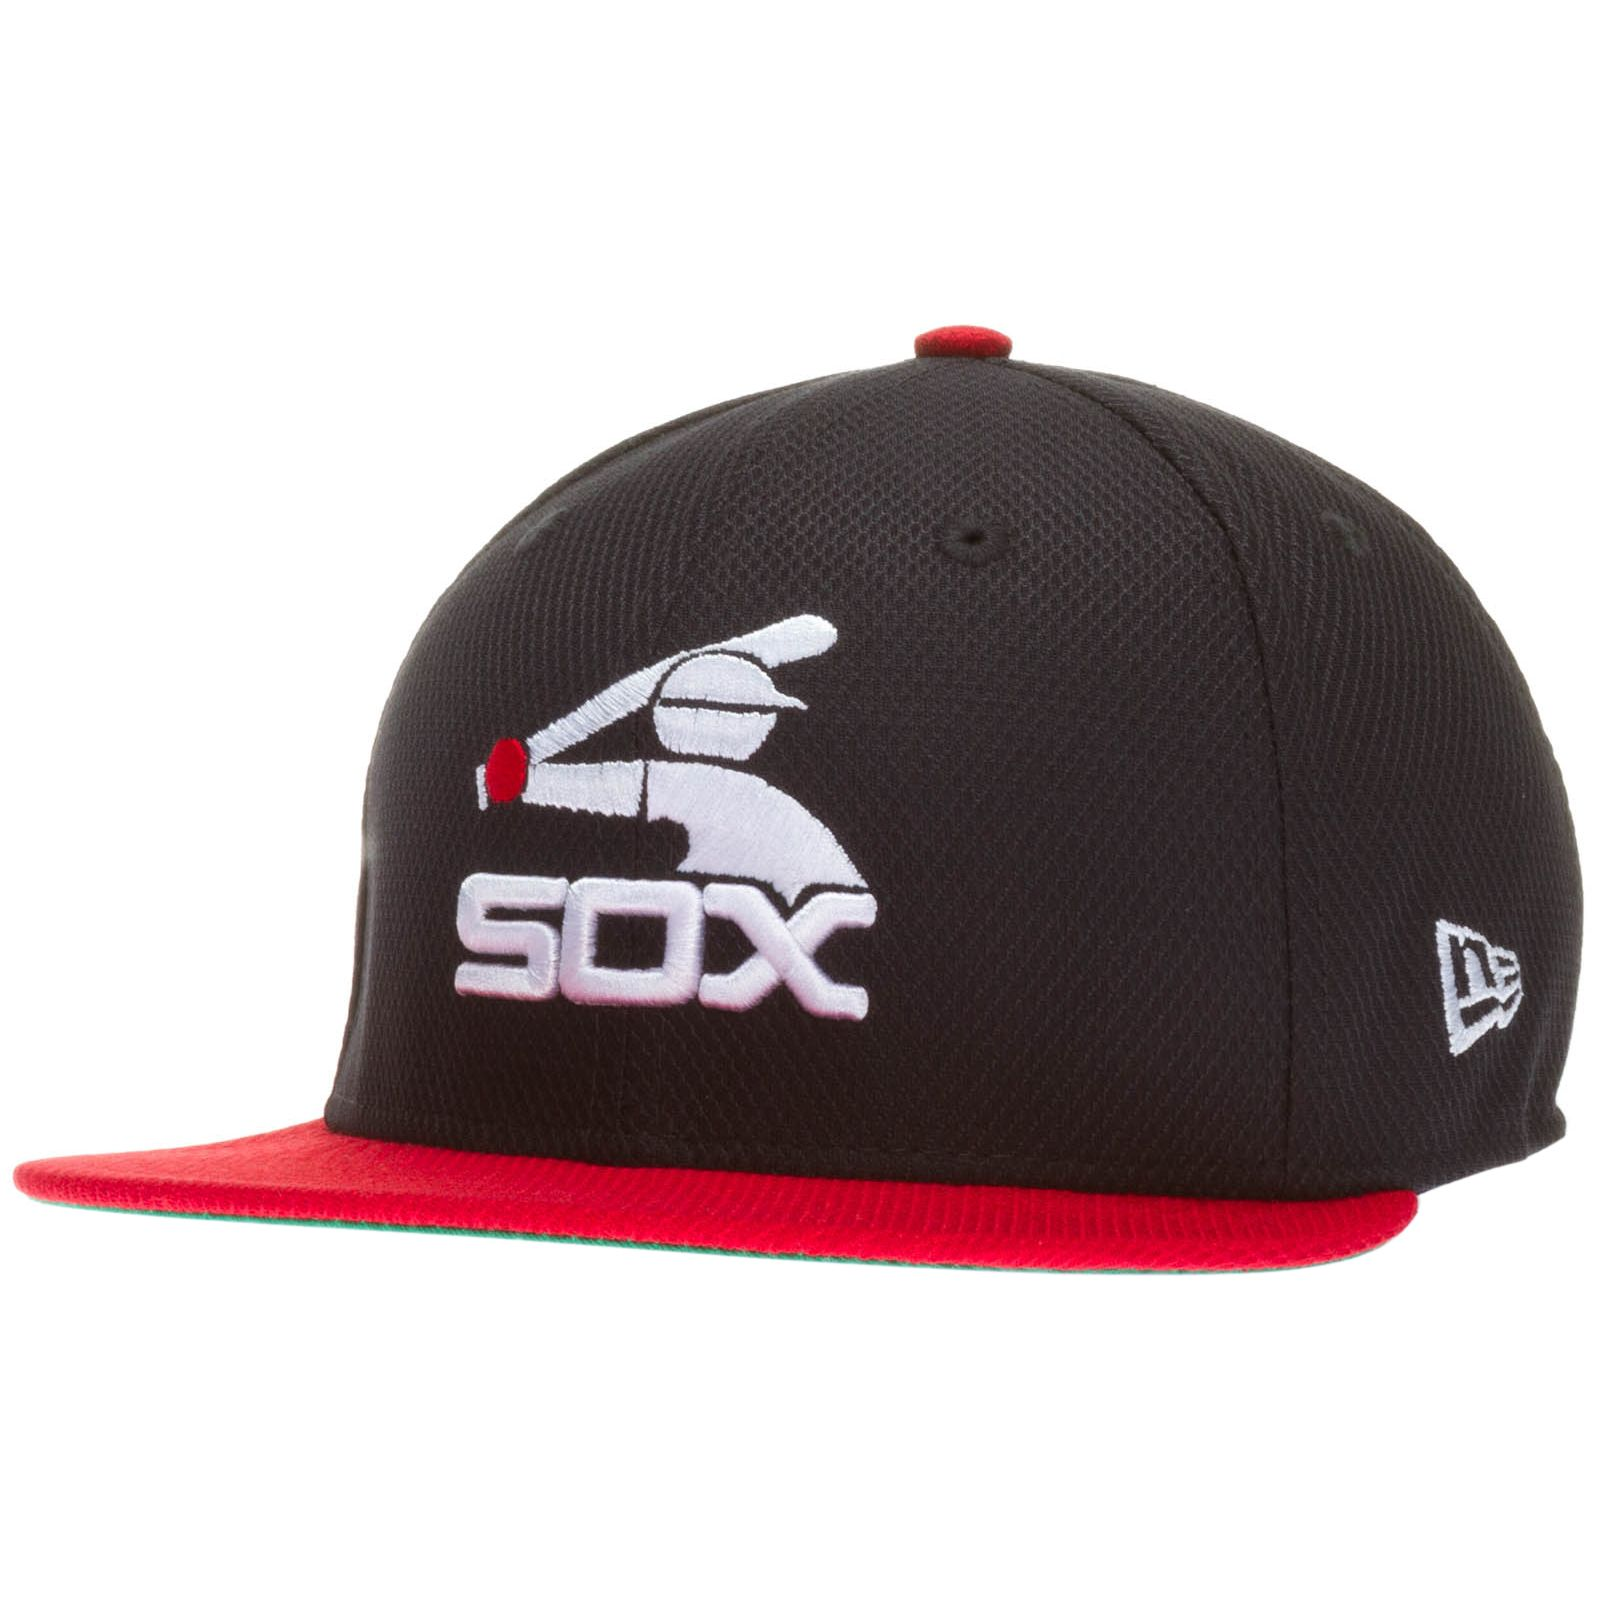 03425b2bf Chicago White Sox Navy and Red Batterman Logo Flat Bill Fitted Hat ...